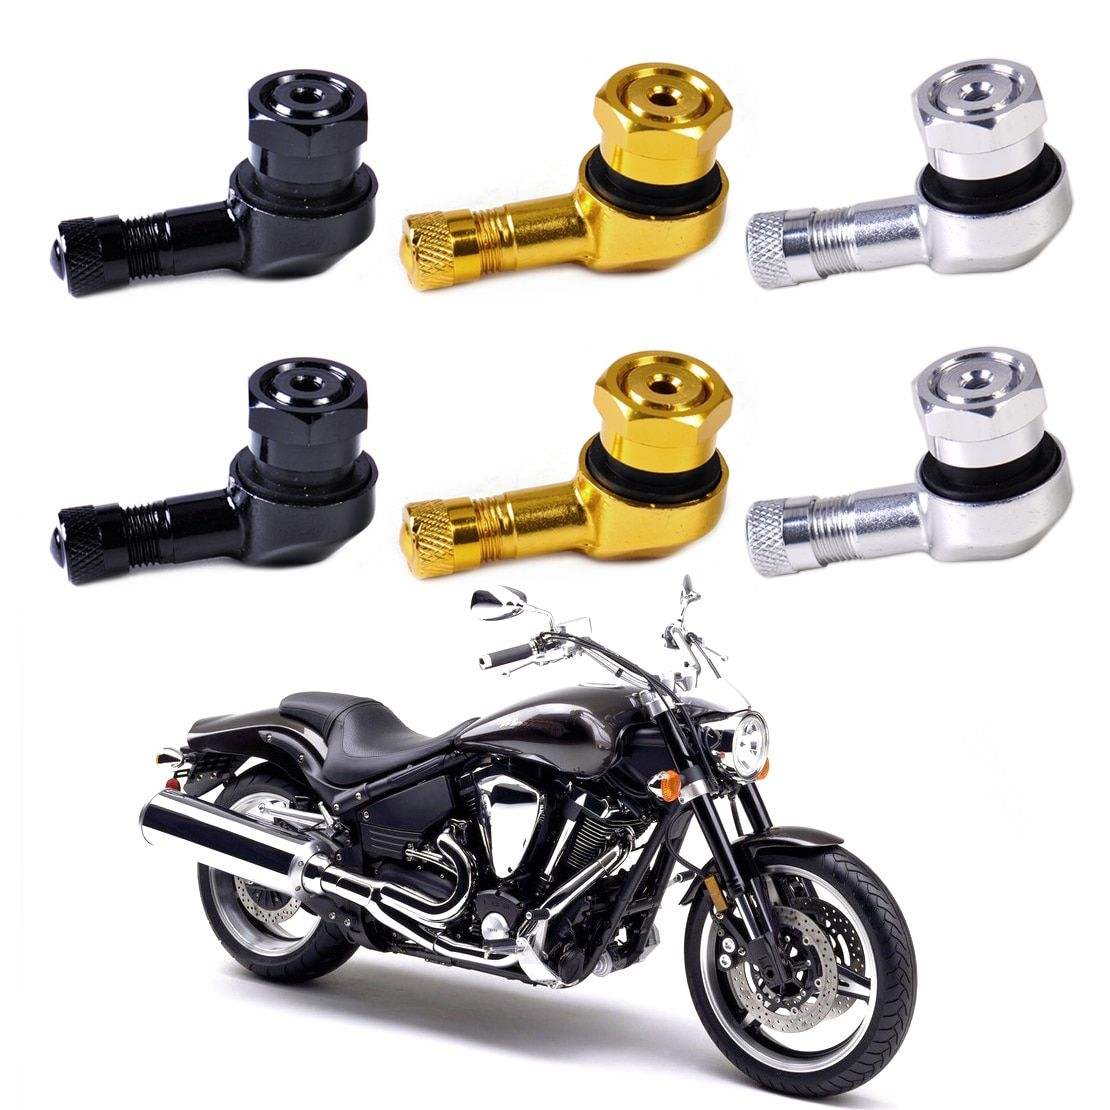 DWCX 2pcs Motorcycle 11.3mm Aluminum Wheels Tyre Tire Valve Stem Cap 90 Degree for Harley Chopper Honda Yamaha Suzuki Truck